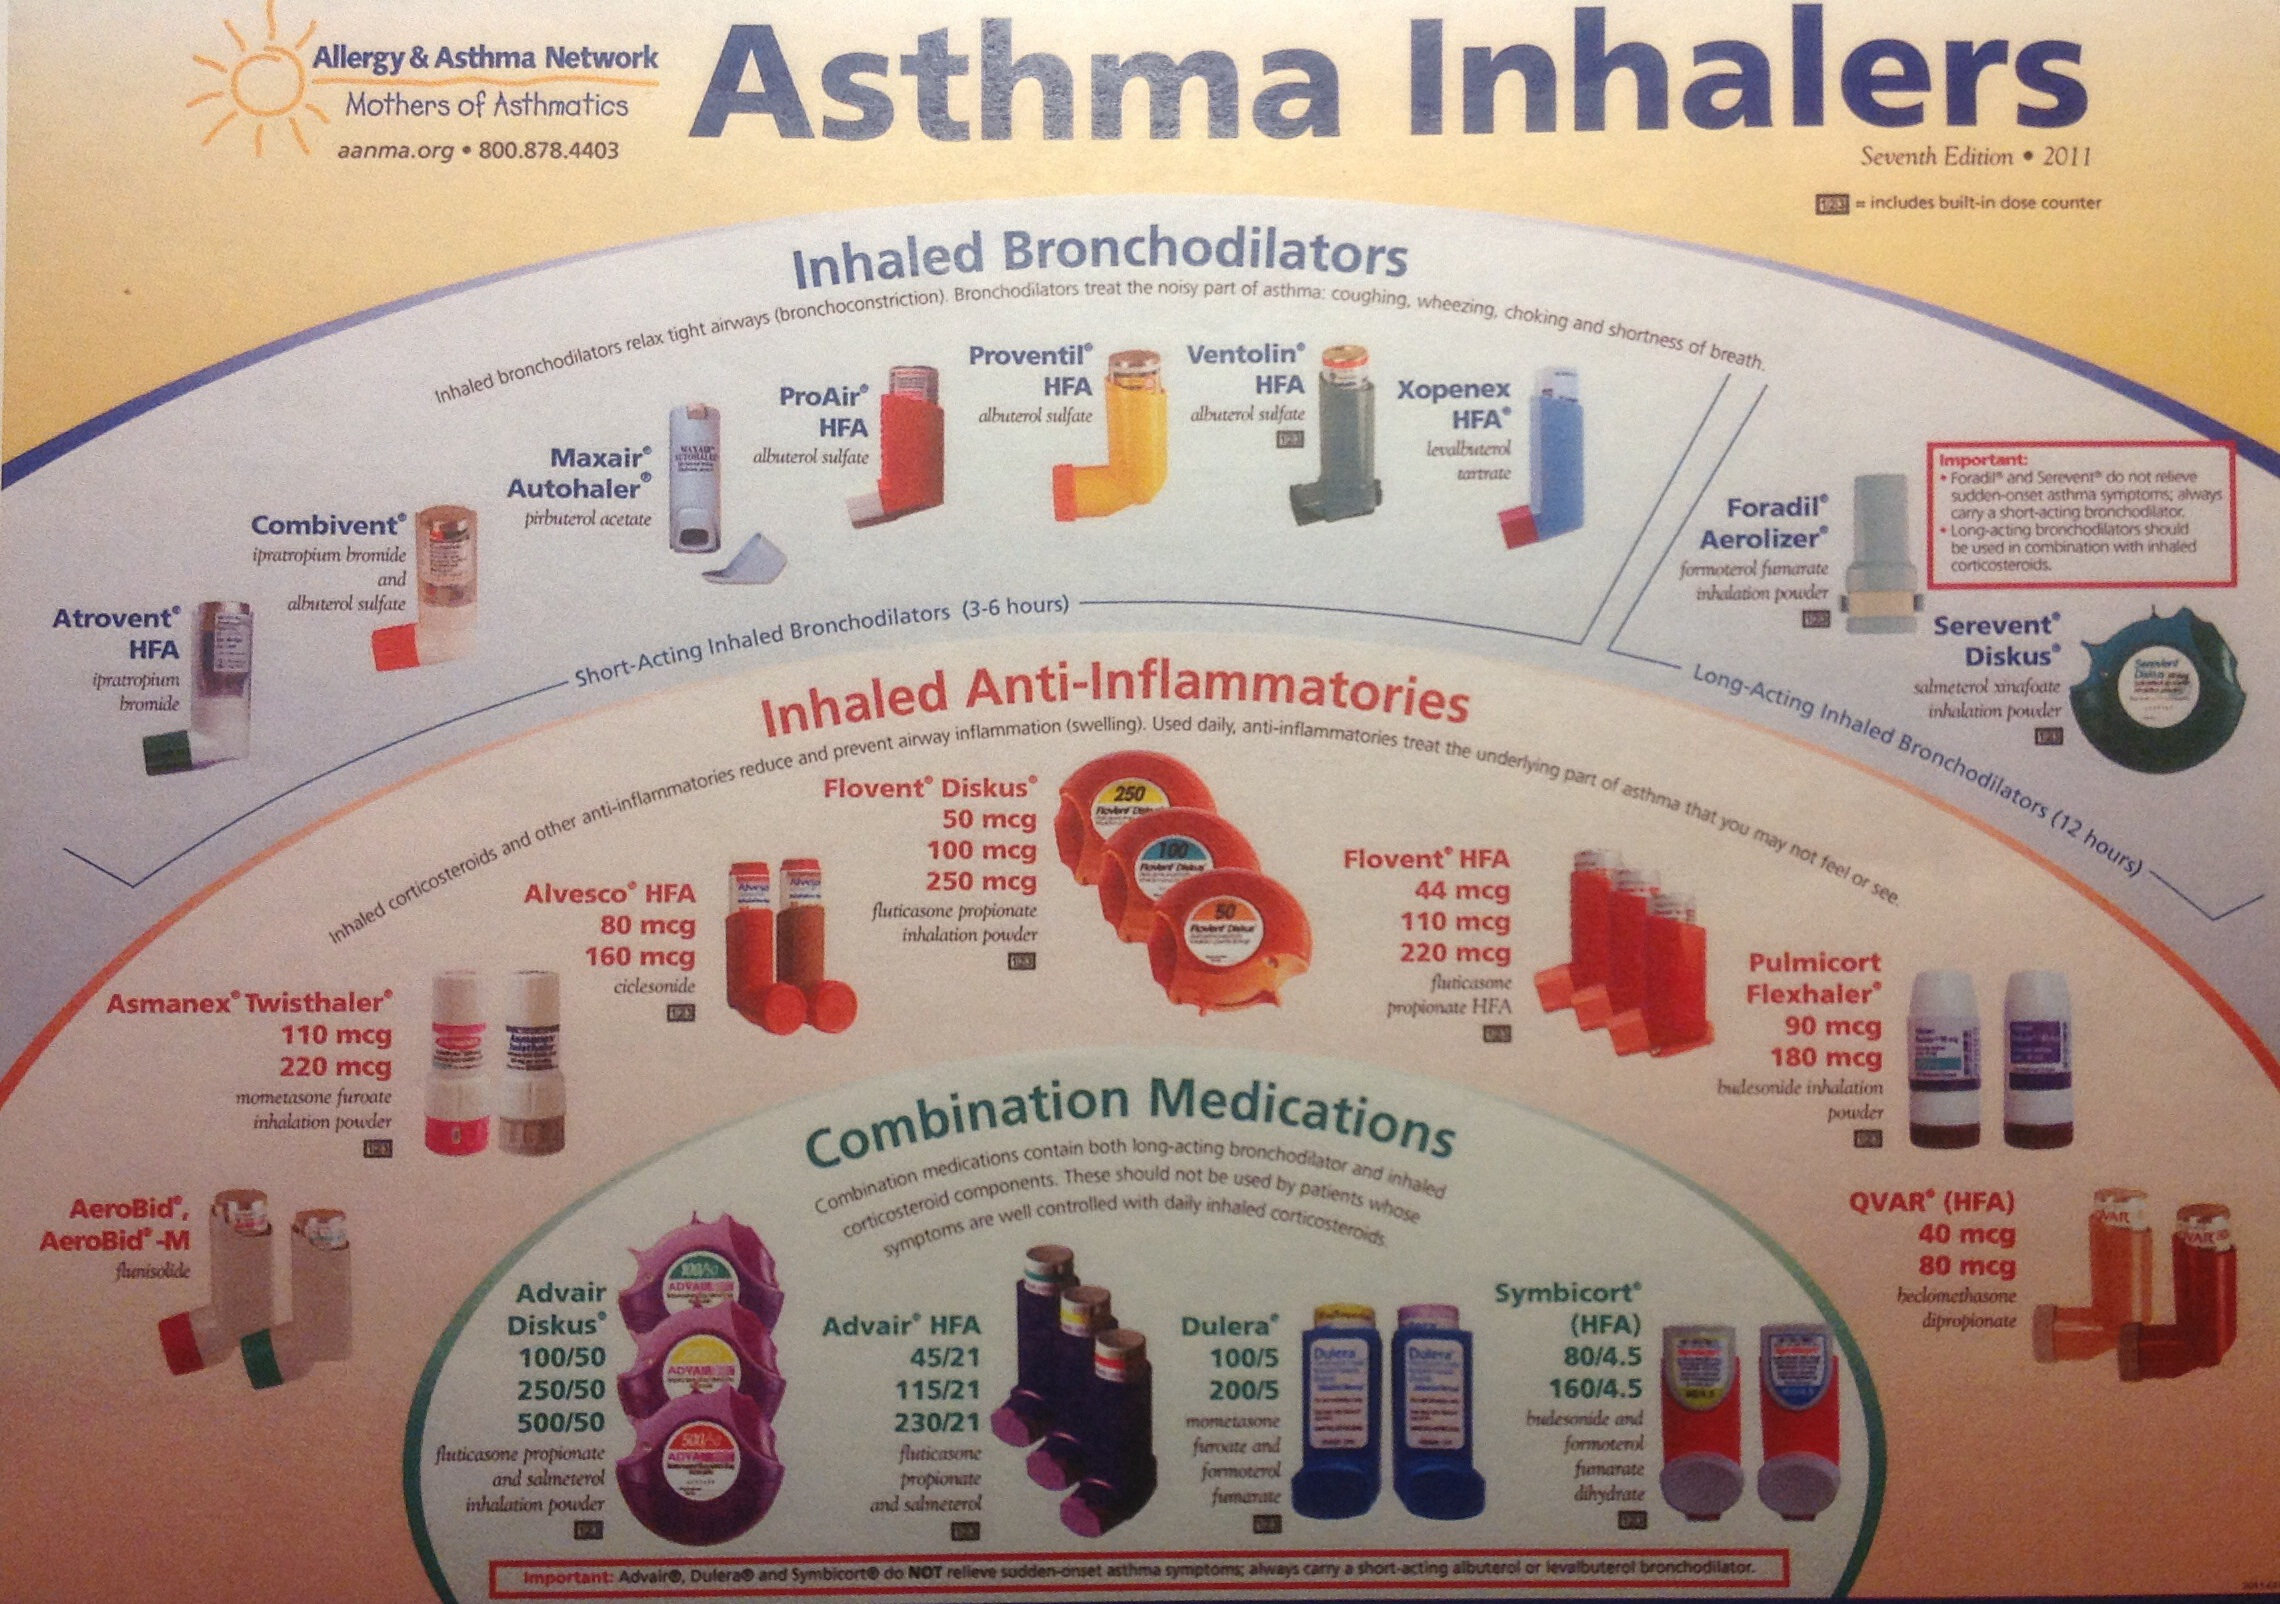 asthma and patient Copd and other chronic respiratory disease epidemiologic studies have had little statistical power to detect relationships between other subcategories of respiratory disease and ozone because of the small numbers of hospitalizations relative to total respiratory or asthma admissions.